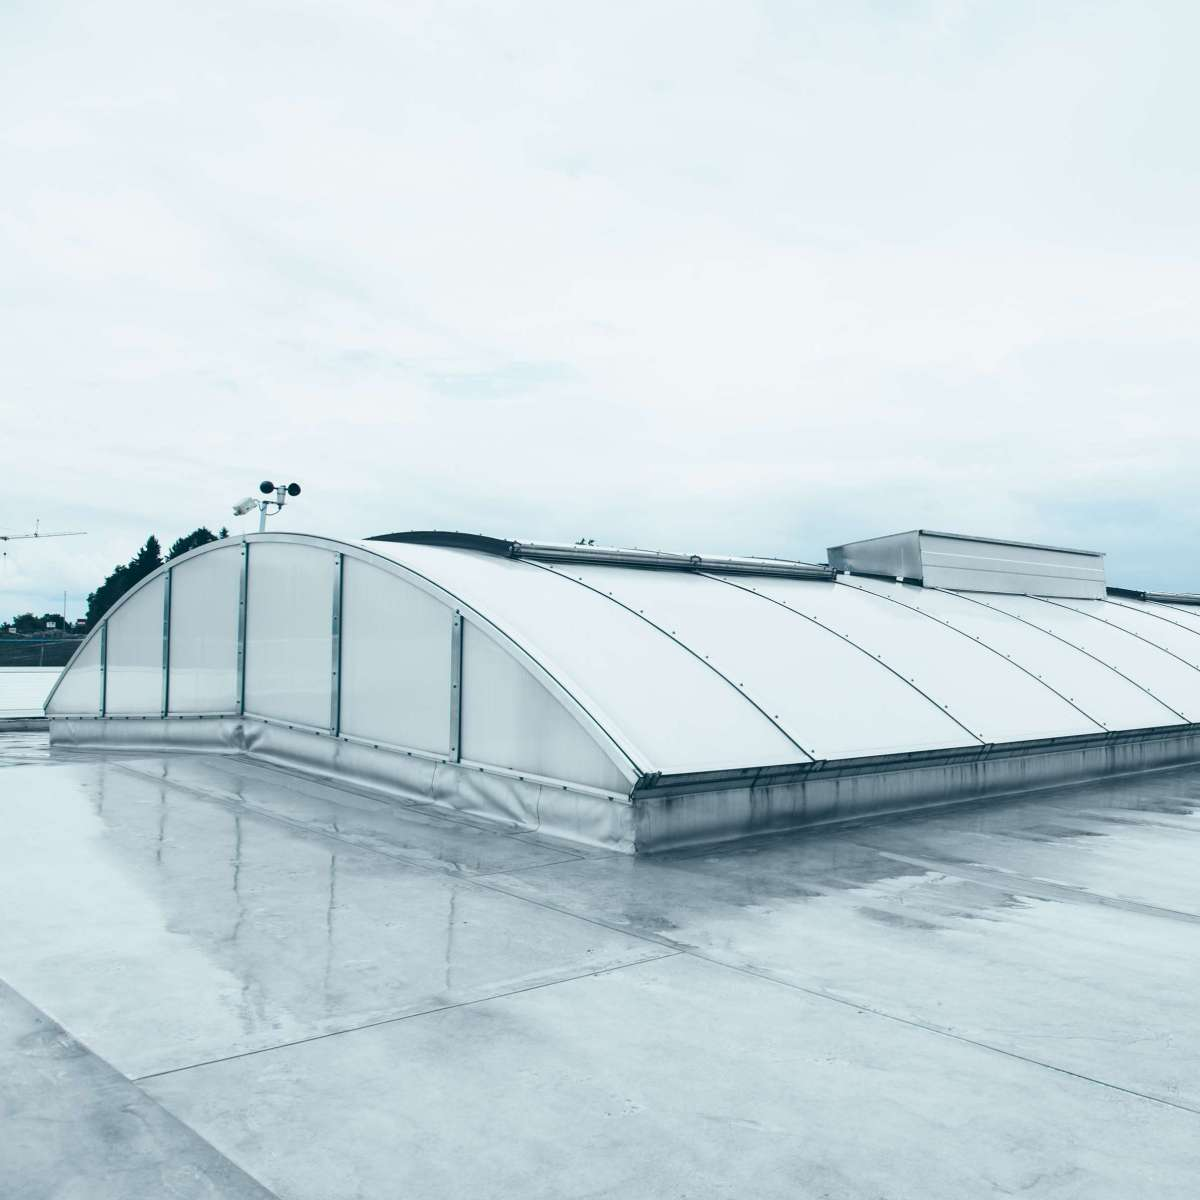 Metron Vilshofen GmbH | Albersdorf/Vilshofen • New installation of the Proline 16 continuous rooflight, 3 continuous rooflights each with 54 m x 6 m. 27 SHEV and 12 ventilation flaps.